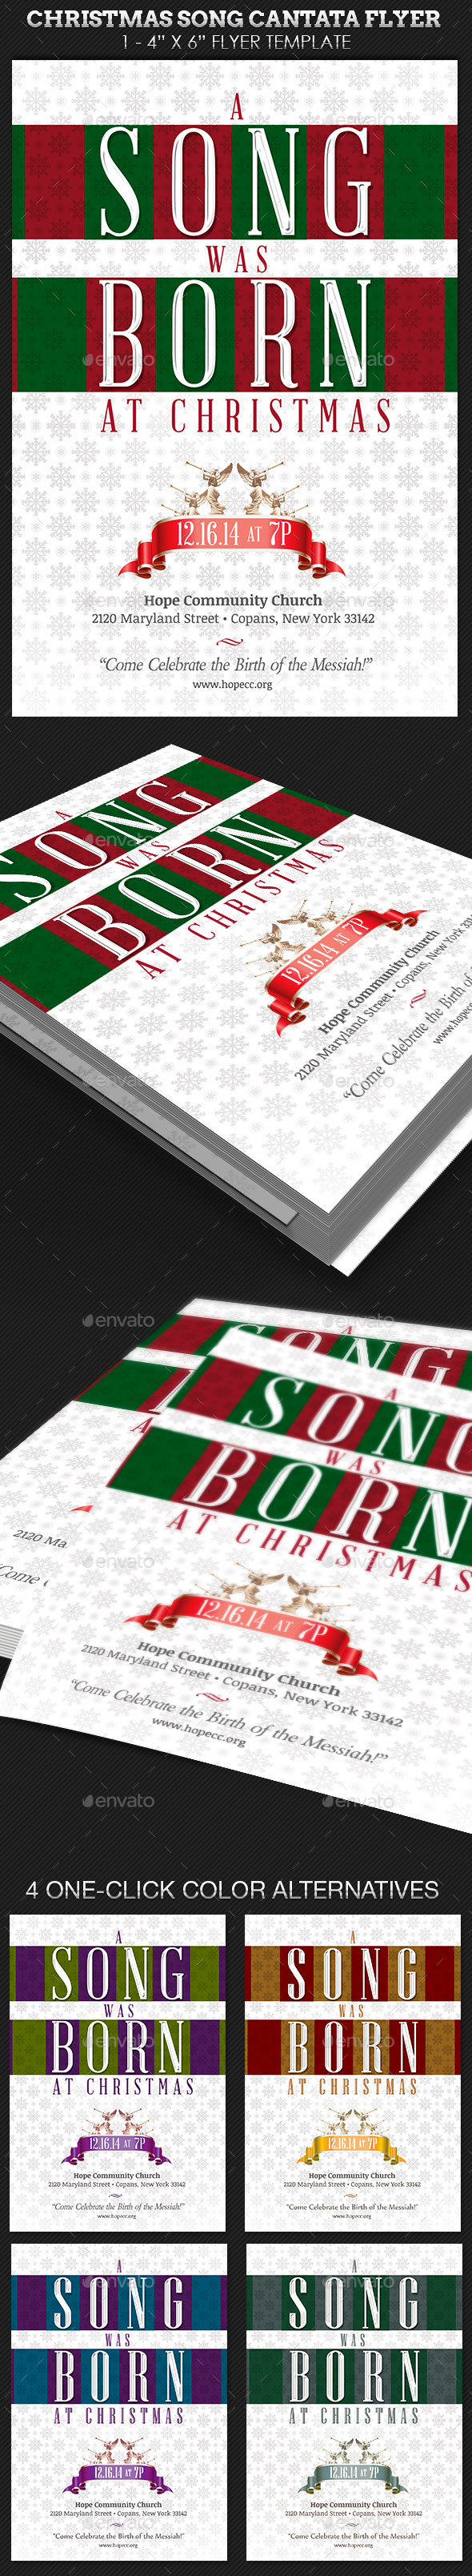 Christmas Song Cantata Flyer Template - Church Flyers